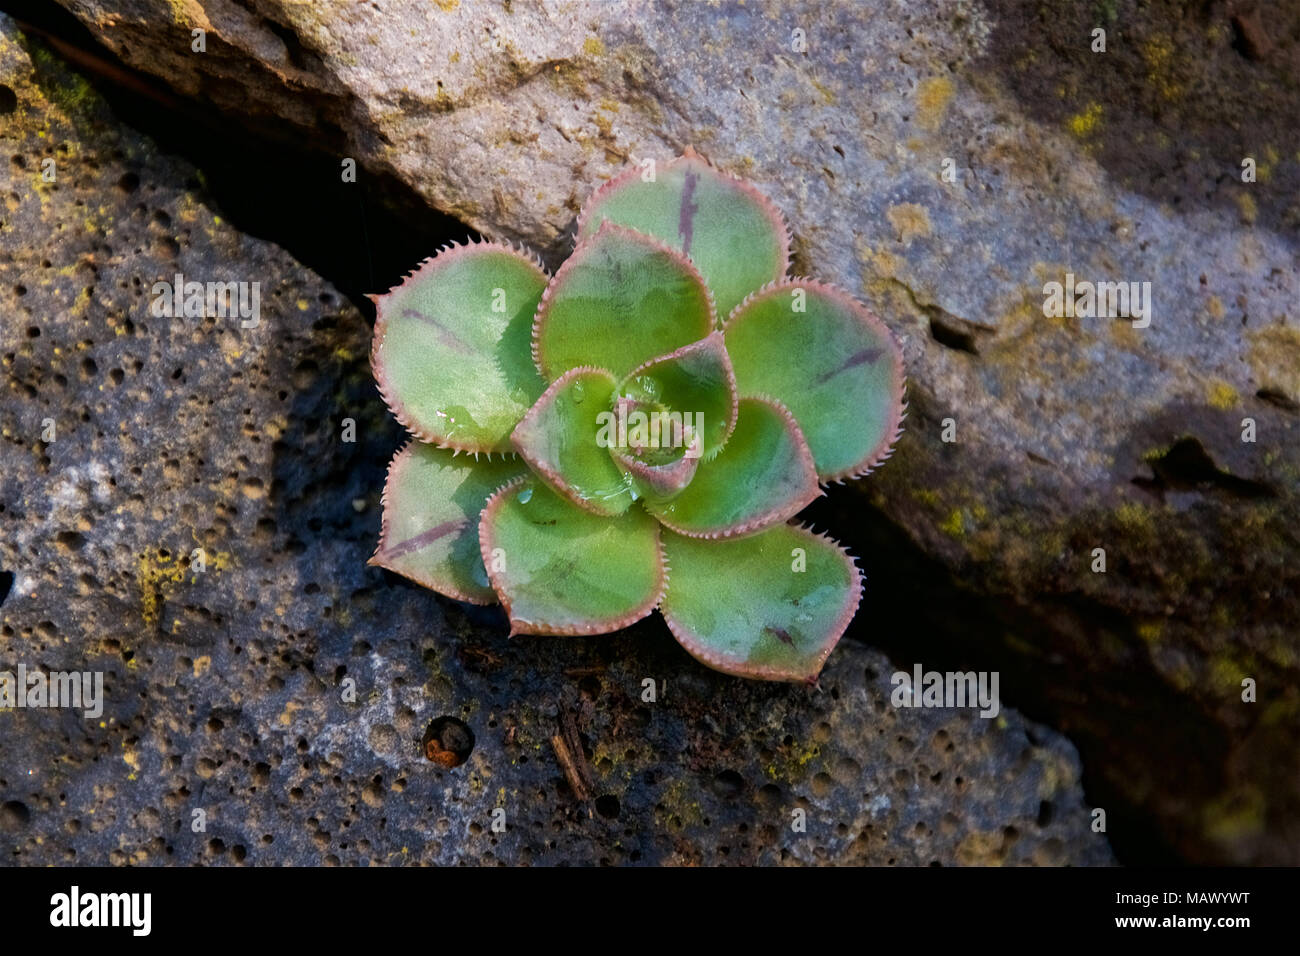 A small tree houseleek (Aeonium sp.) plant within a stone wall in El Hierro, Canary Islands, Spain - Stock Image